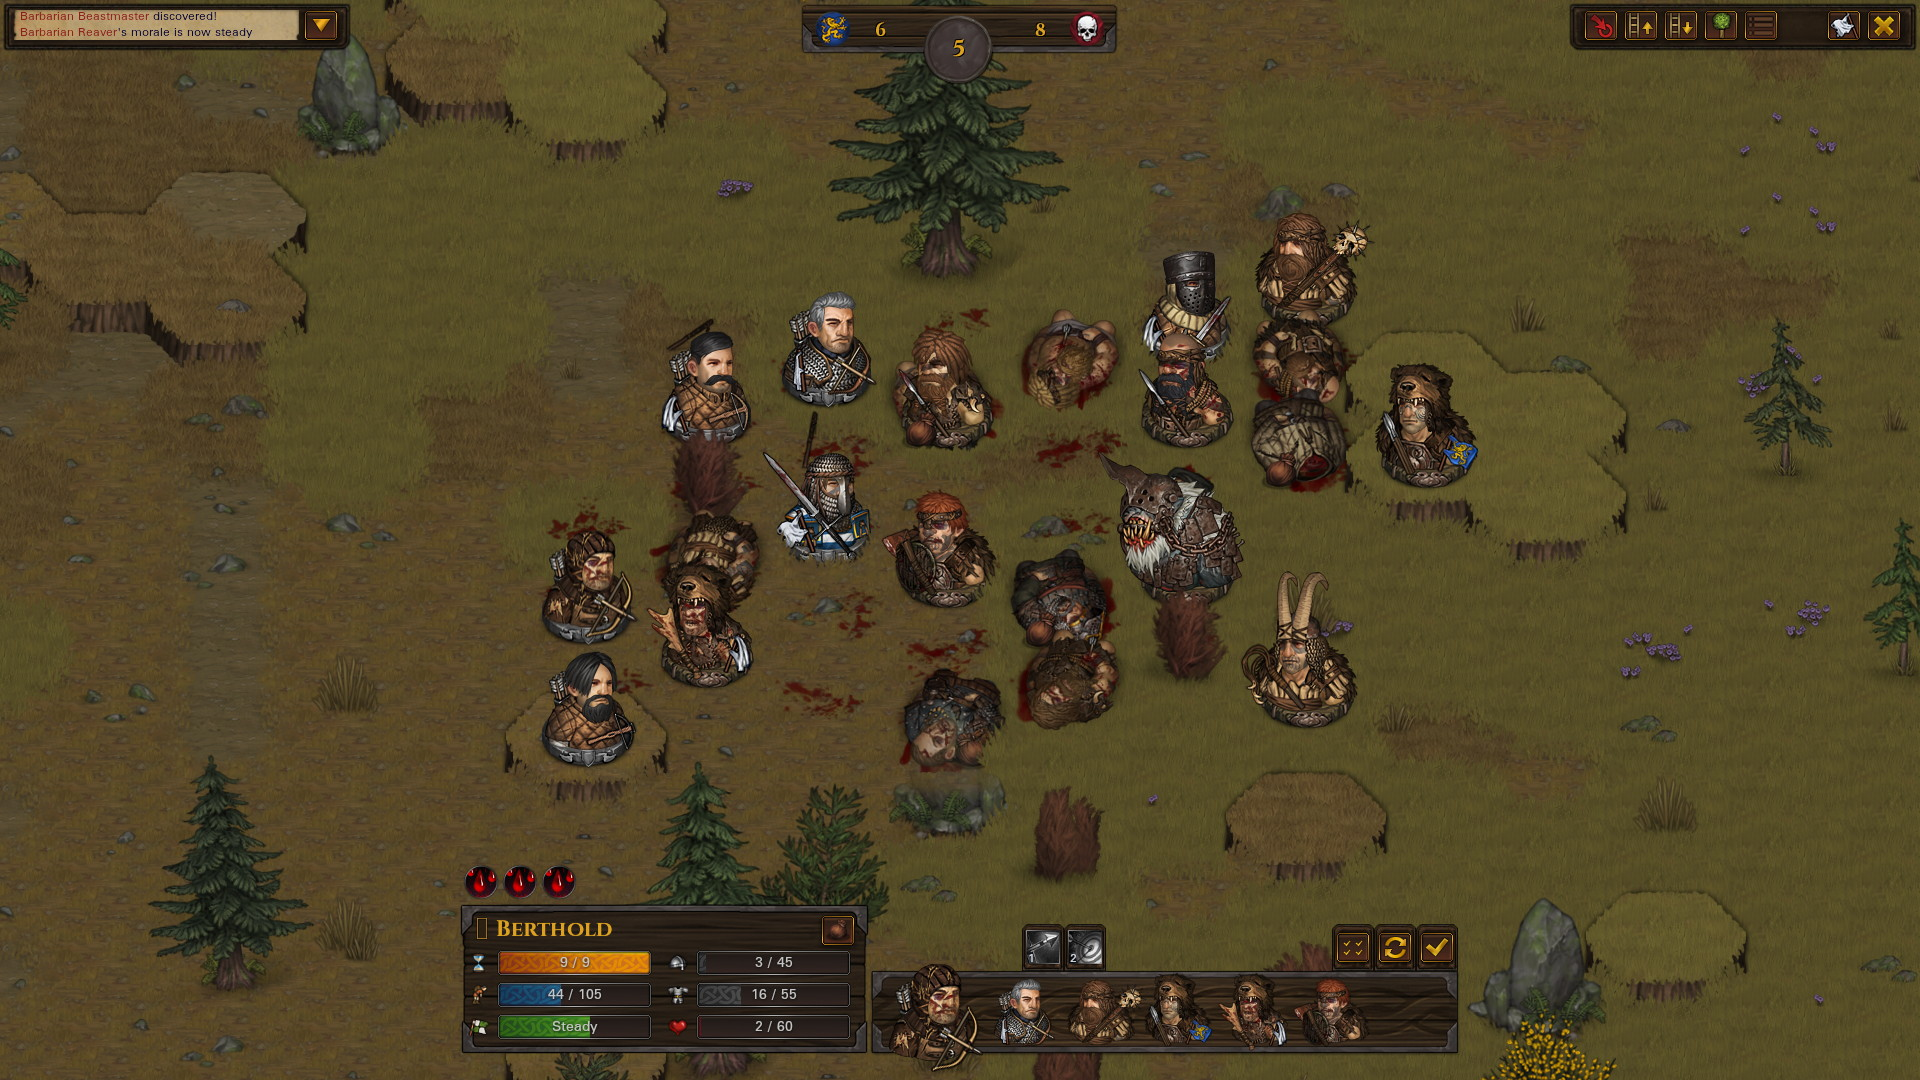 Battle Brothers: Warriors of the North - screenshot 4